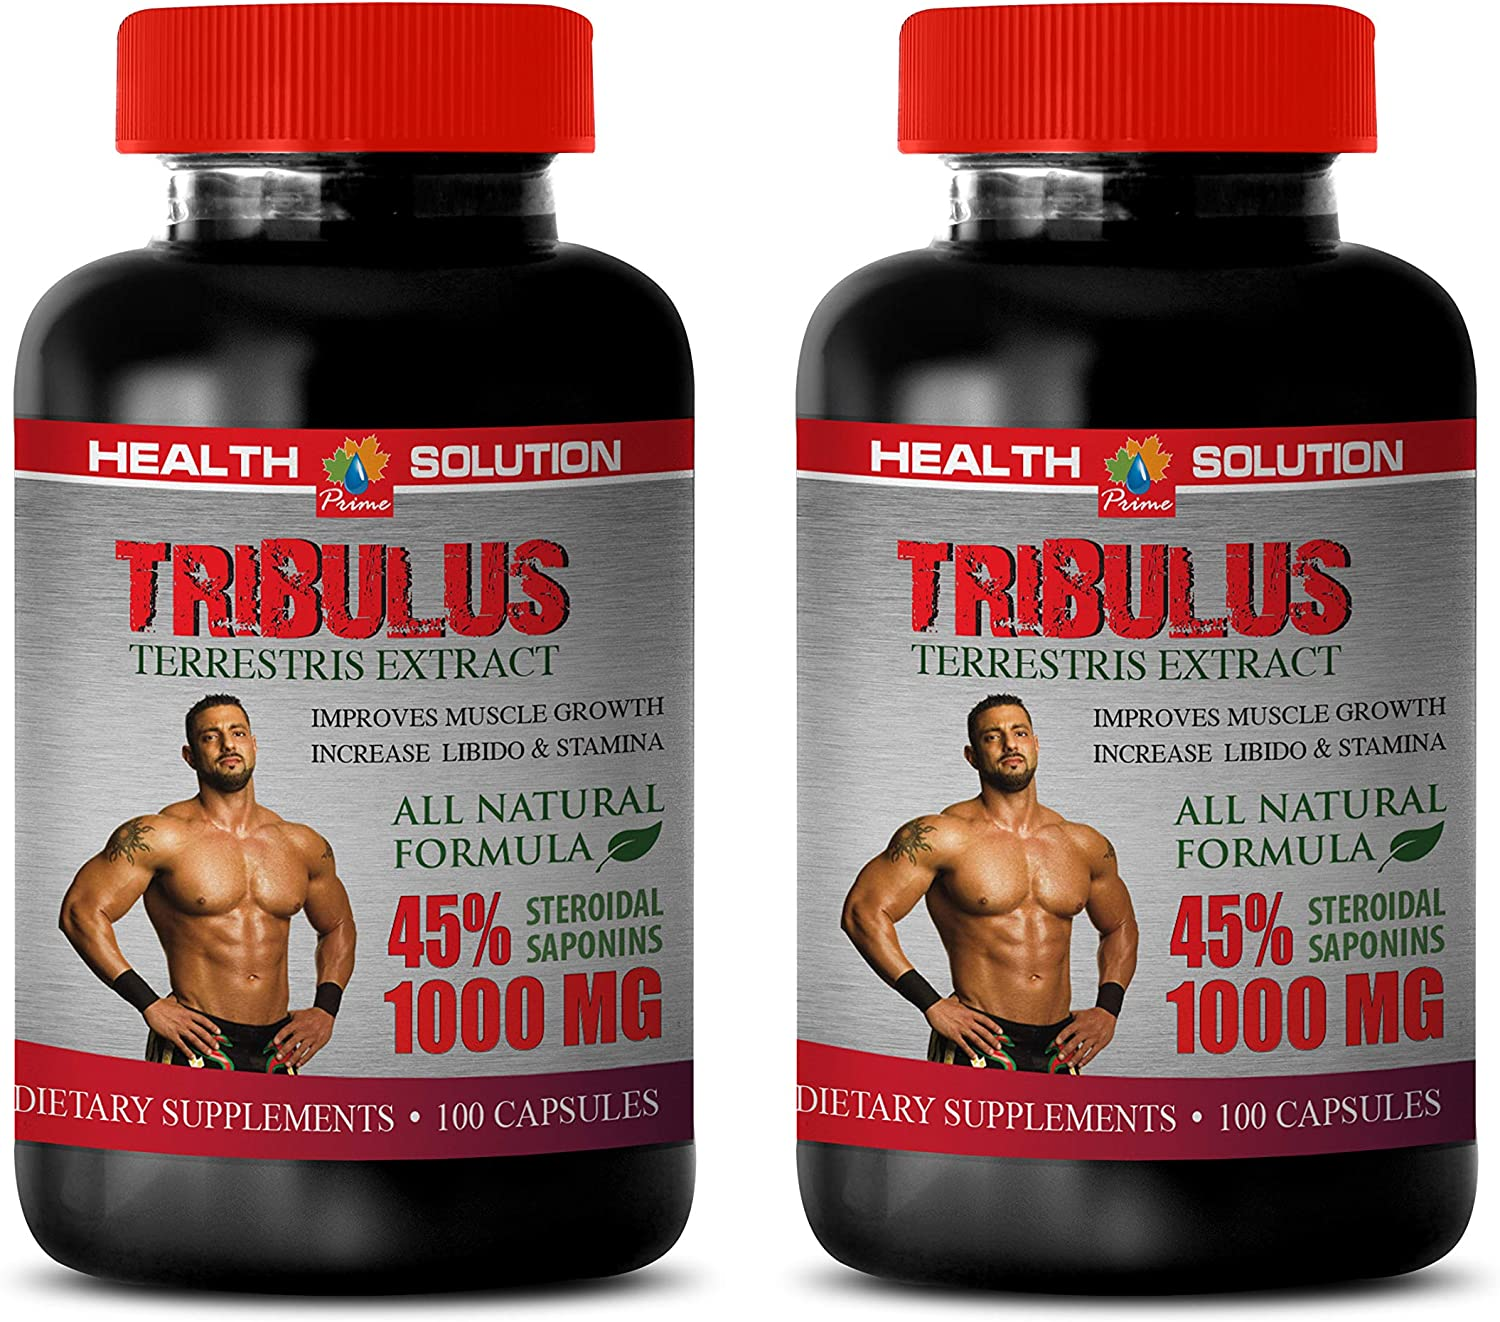 libido and Test Booster - TRIBULUS TERRESTRIS 1000MG - 45% STEROIDAL SAPONINS - tribulus max - 2 Bottles (200 Capsules)